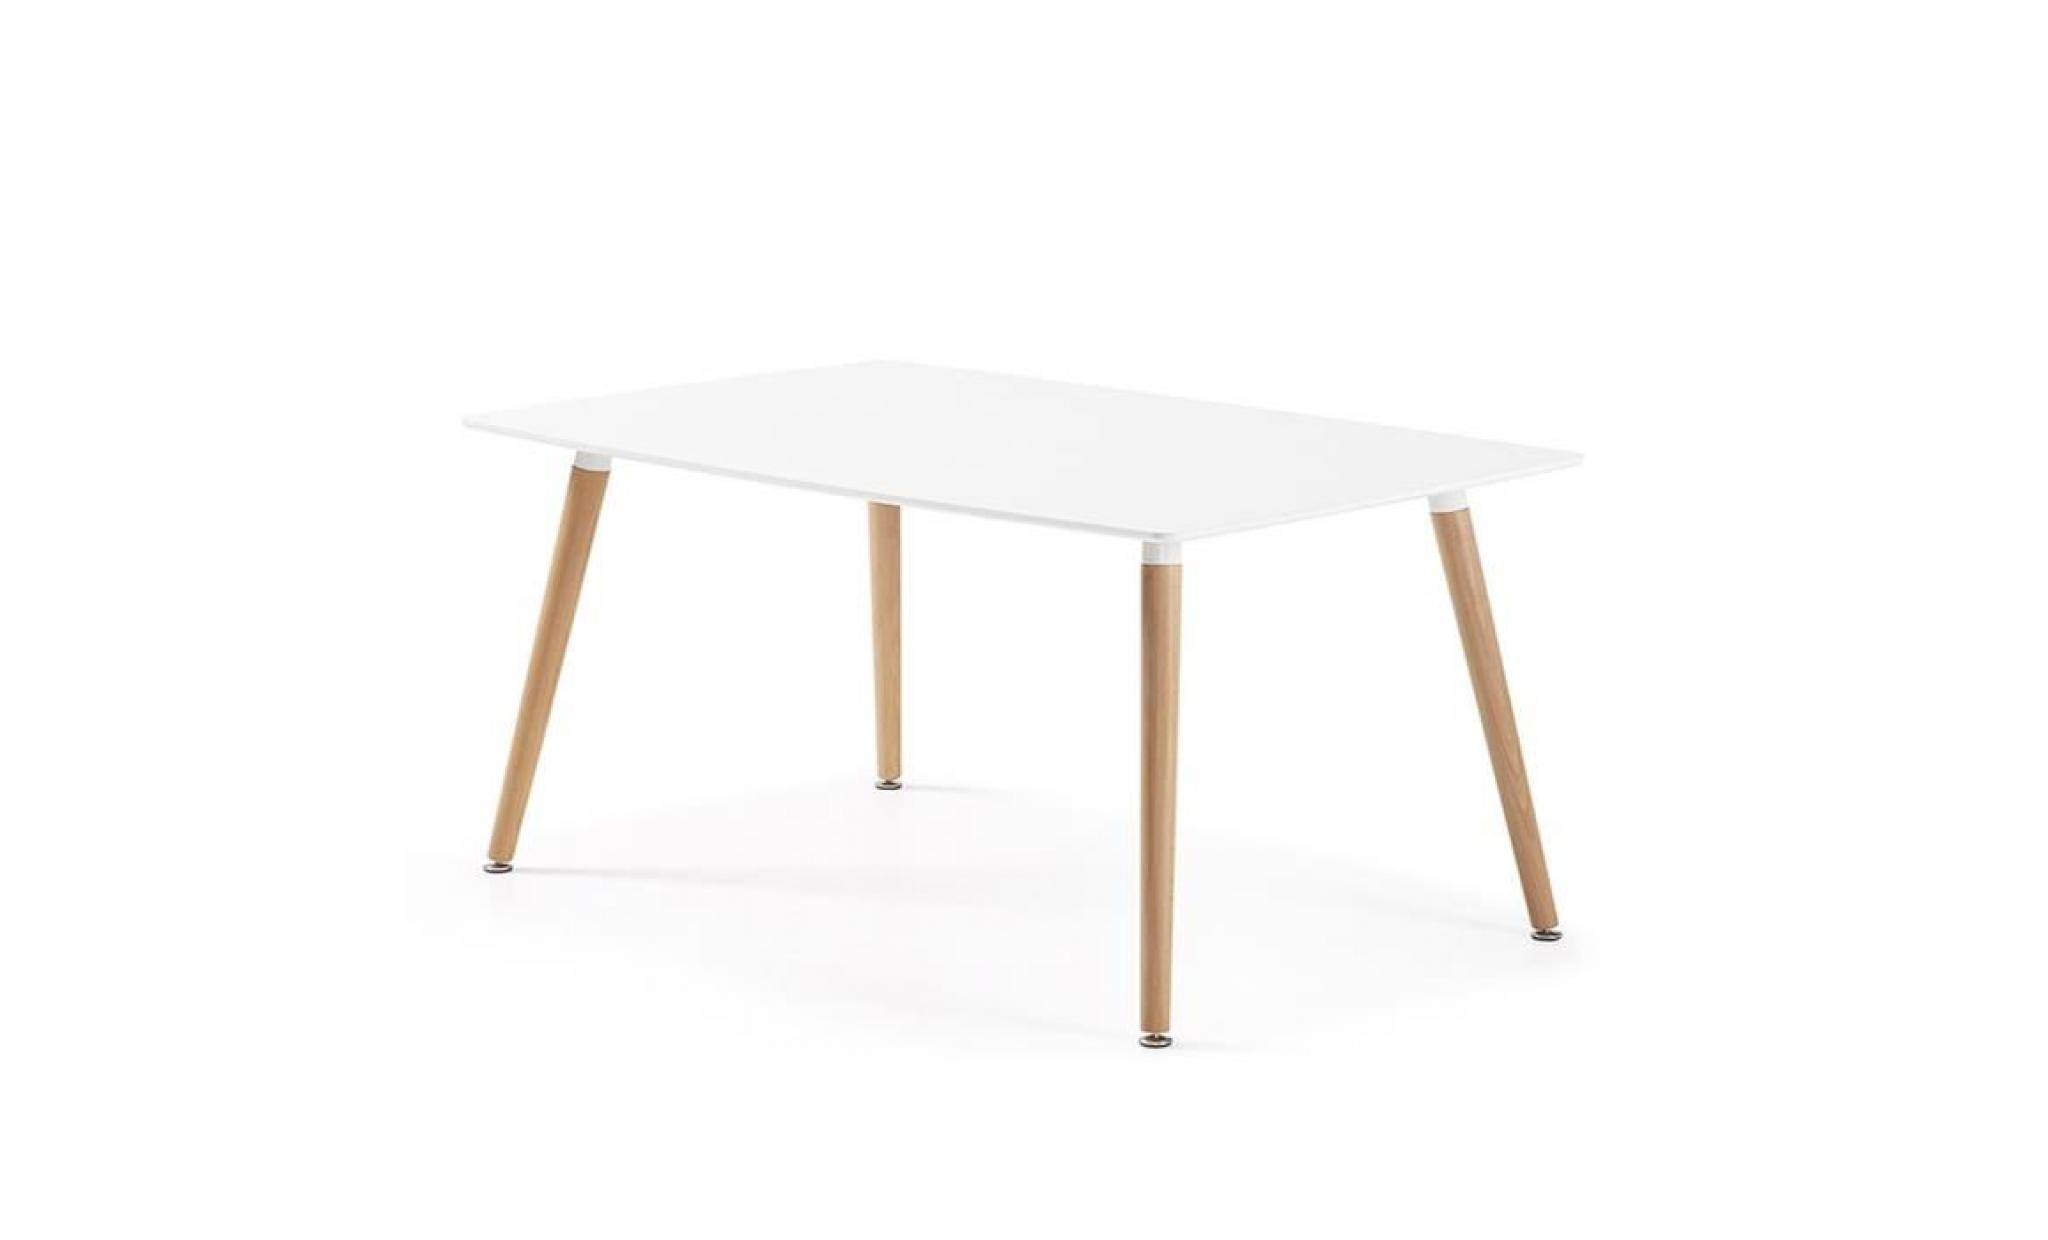 Table manger rectangulaire design blanche en bois laqu for Table salle a manger bois design